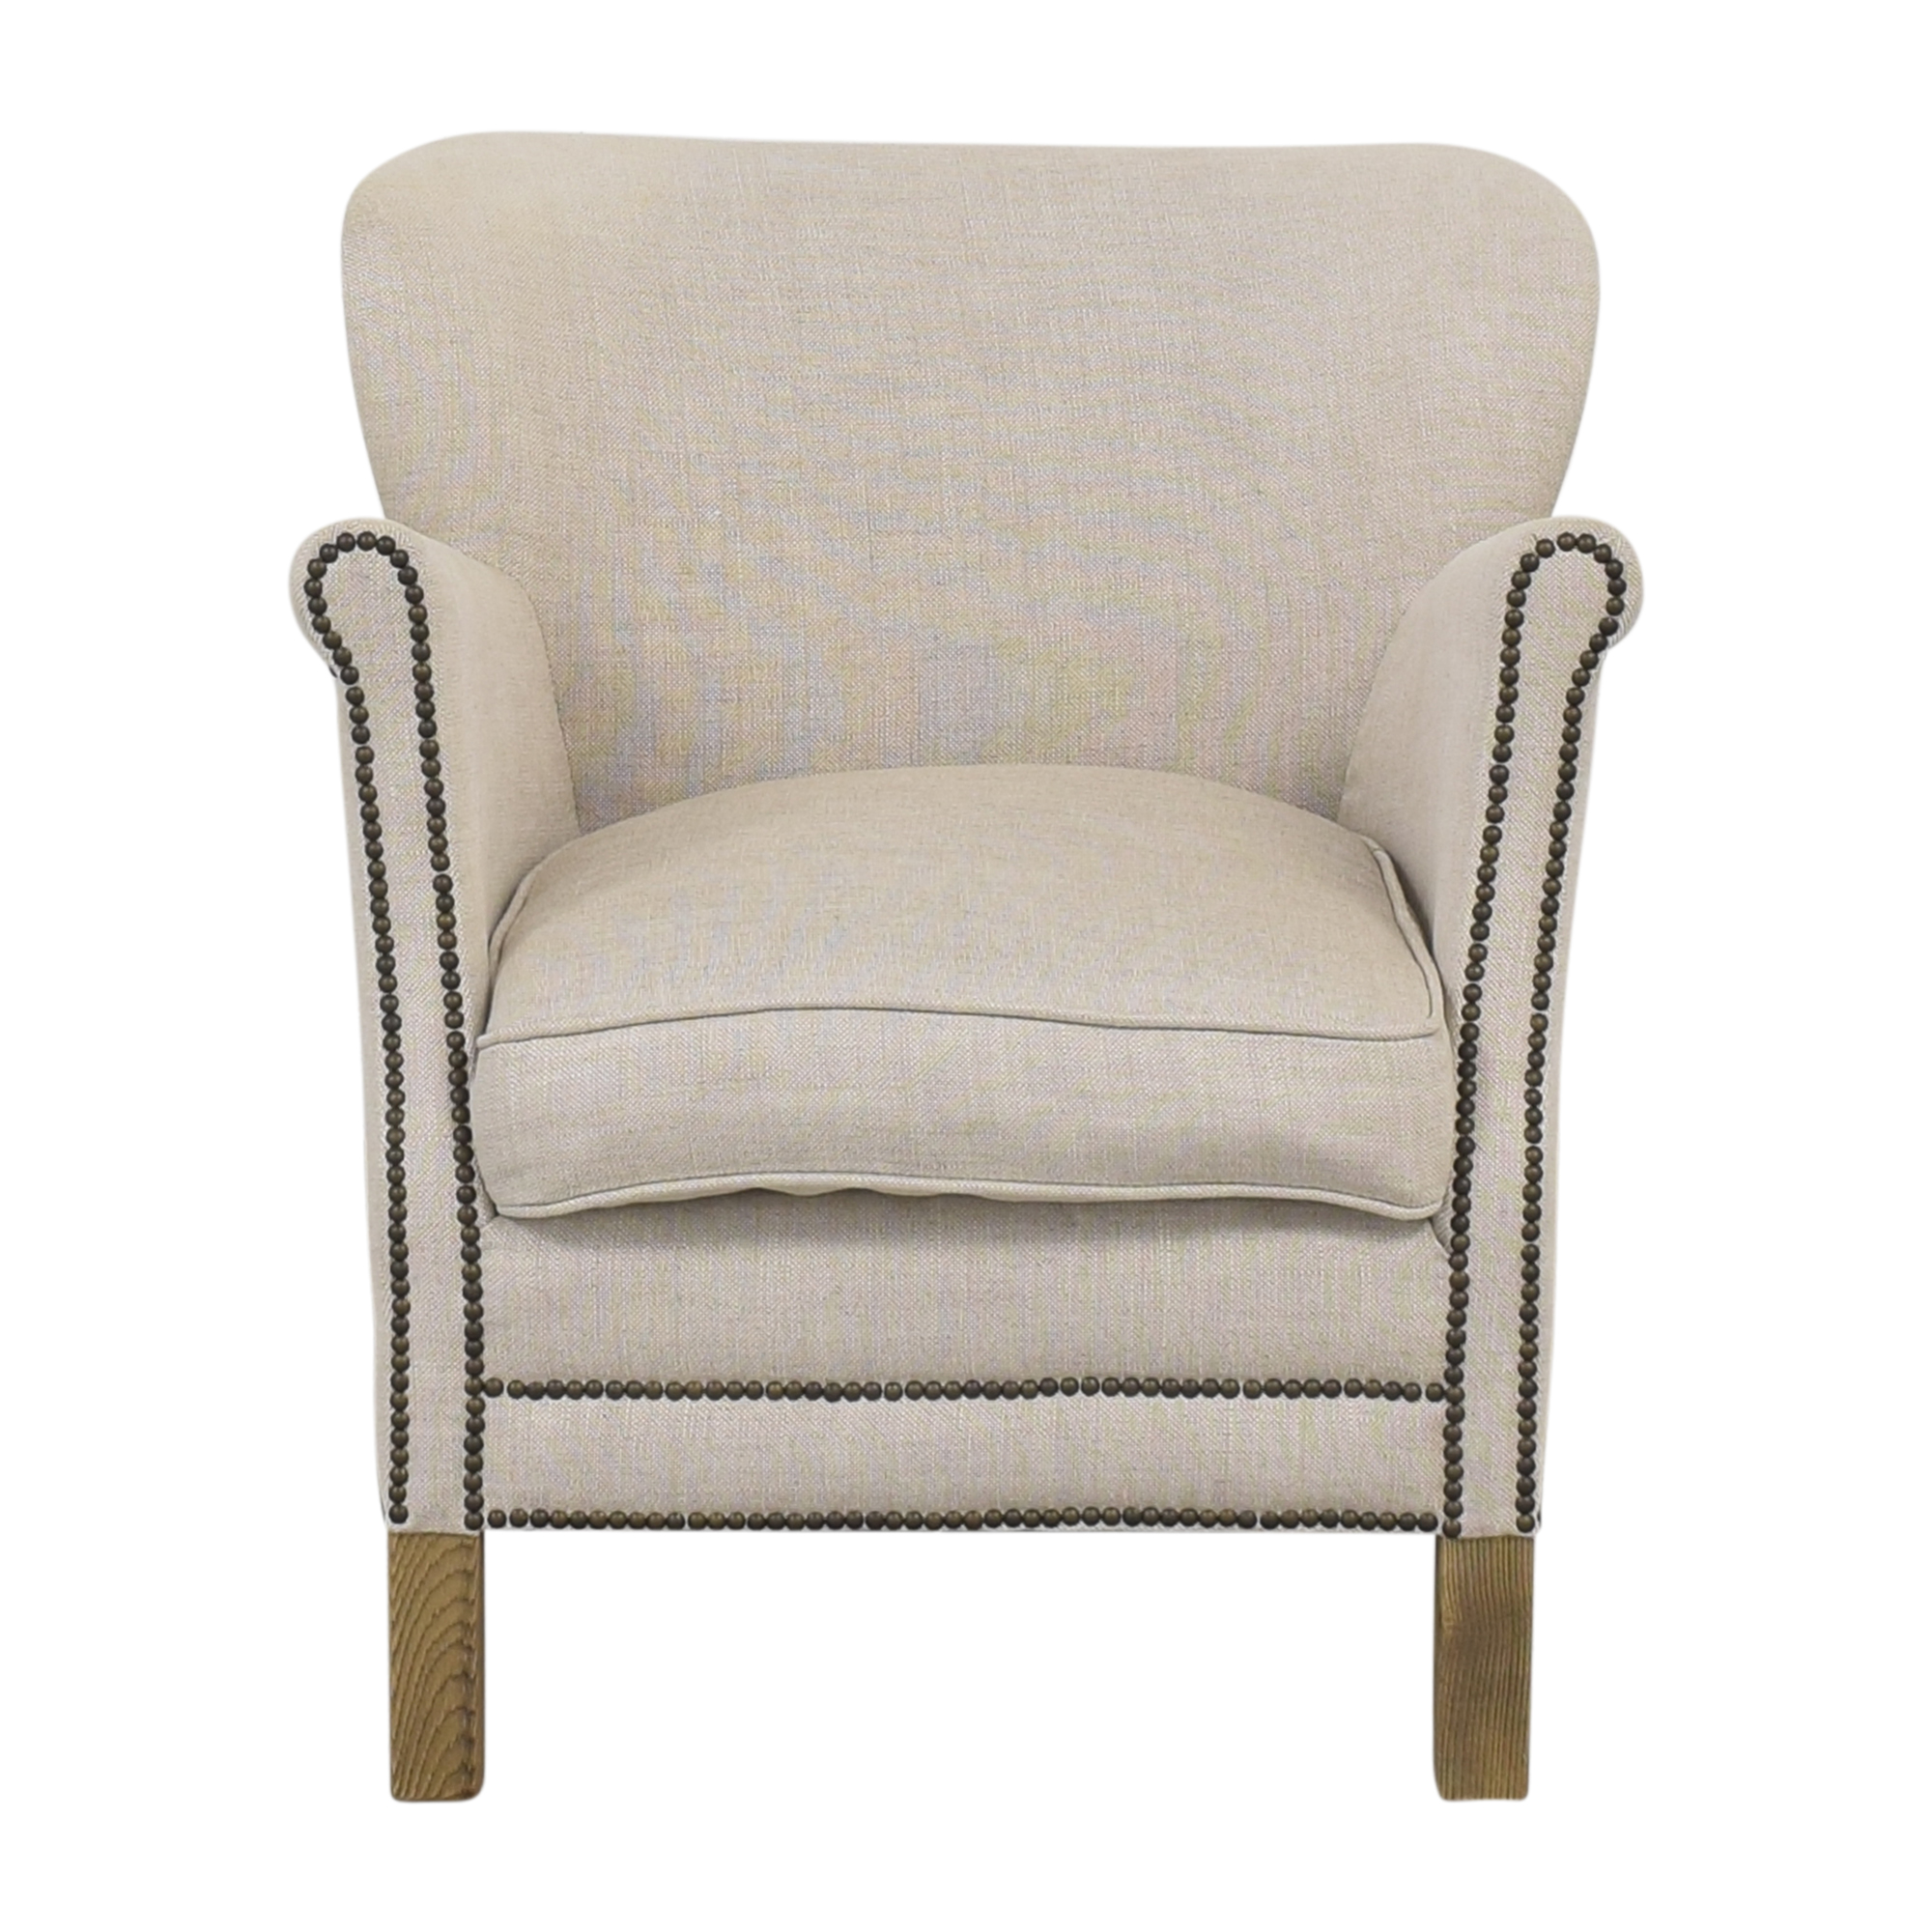 Restoration Hardware Professors Chair with Nailheads / Accent Chairs